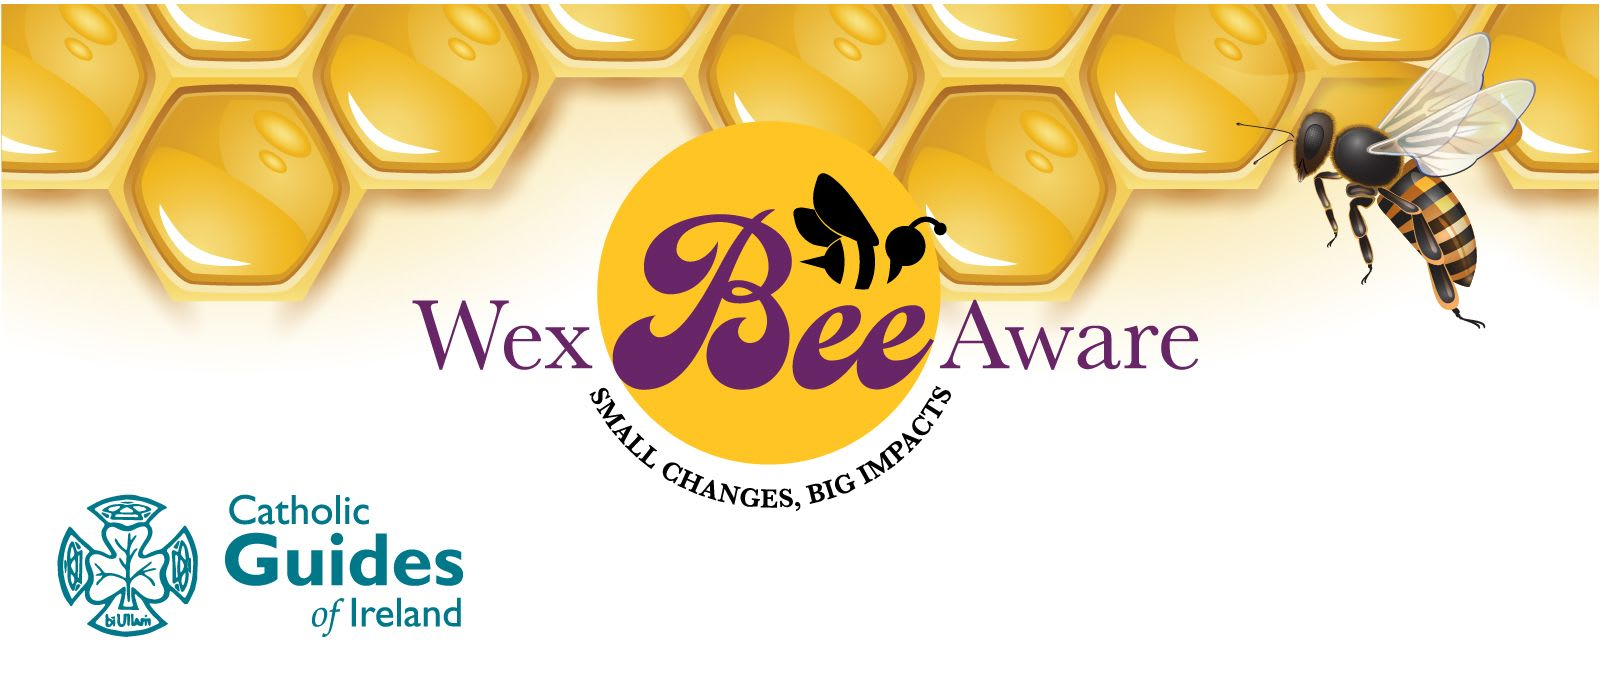 Wex Bee Aware logo over an image of honeycomb